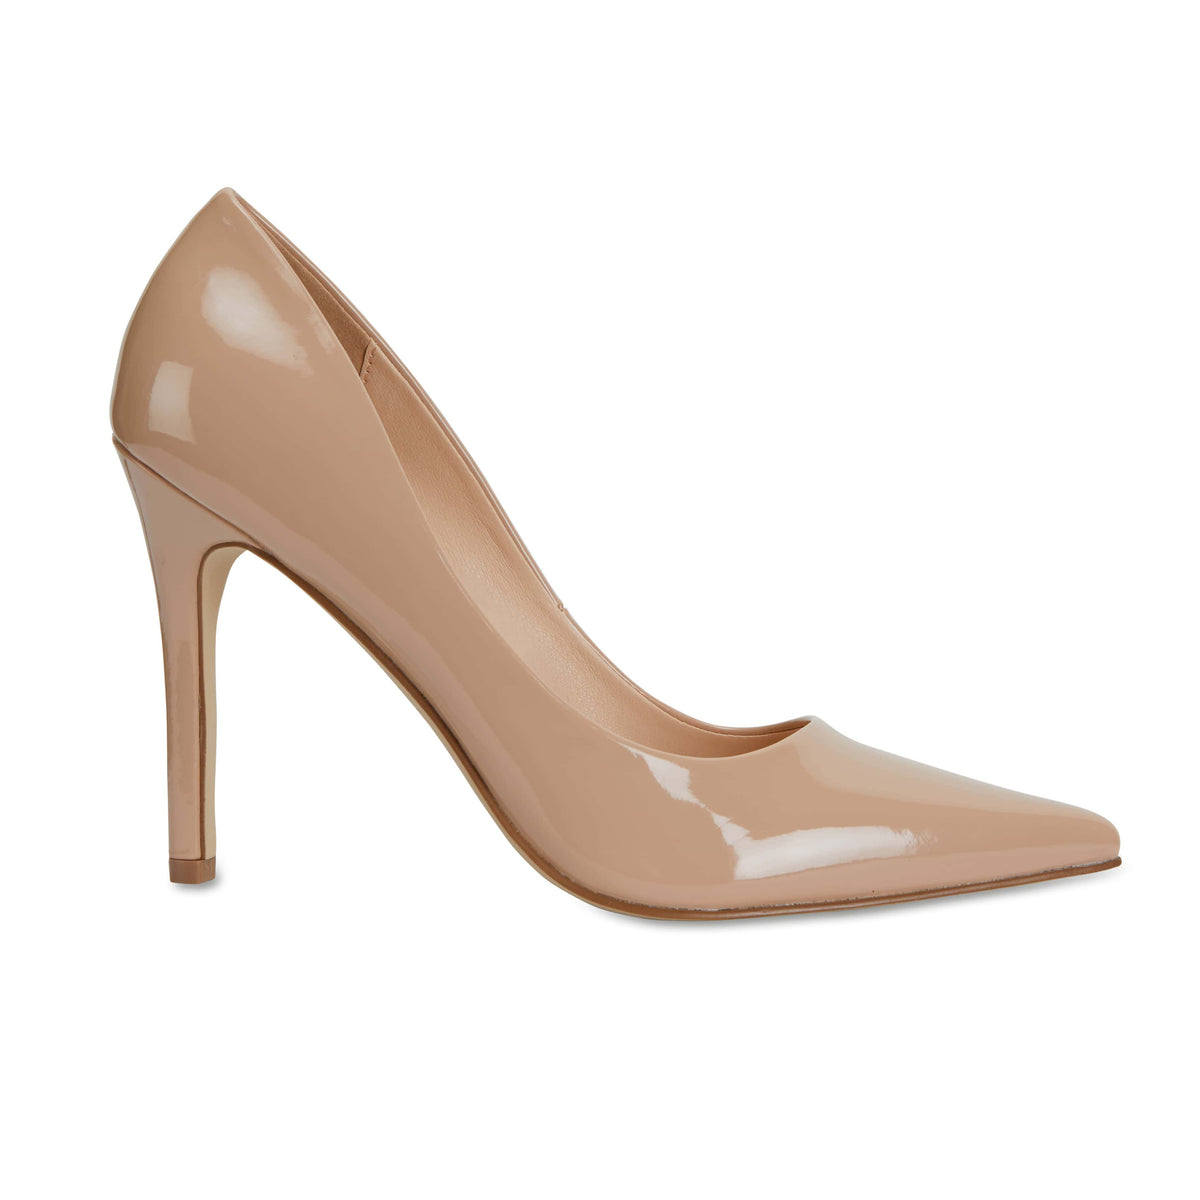 Harbour Heel in Nude Patent